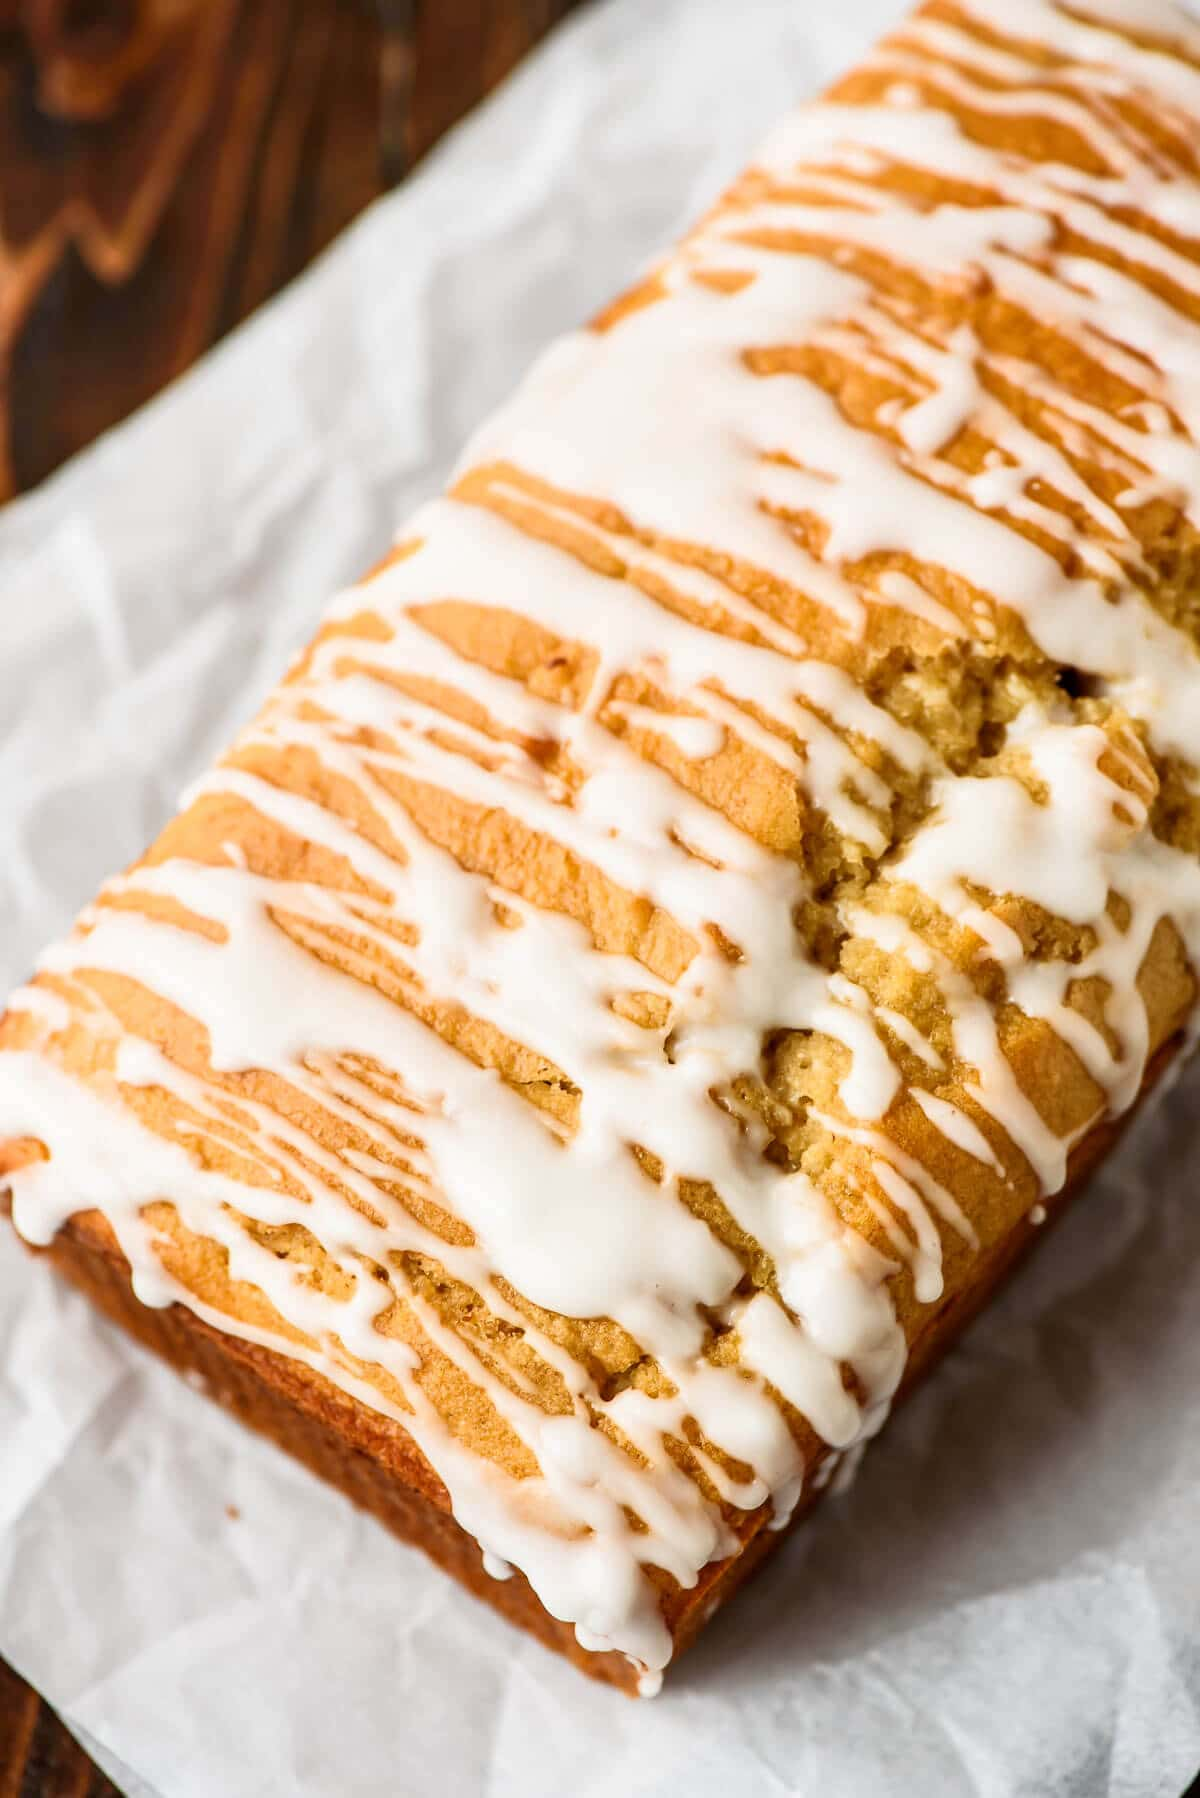 Eggnog Bread recipe - Moist, buttery, and packed with holiday flavors like nutmeg and vanilla. The rum glaze puts it over the top!